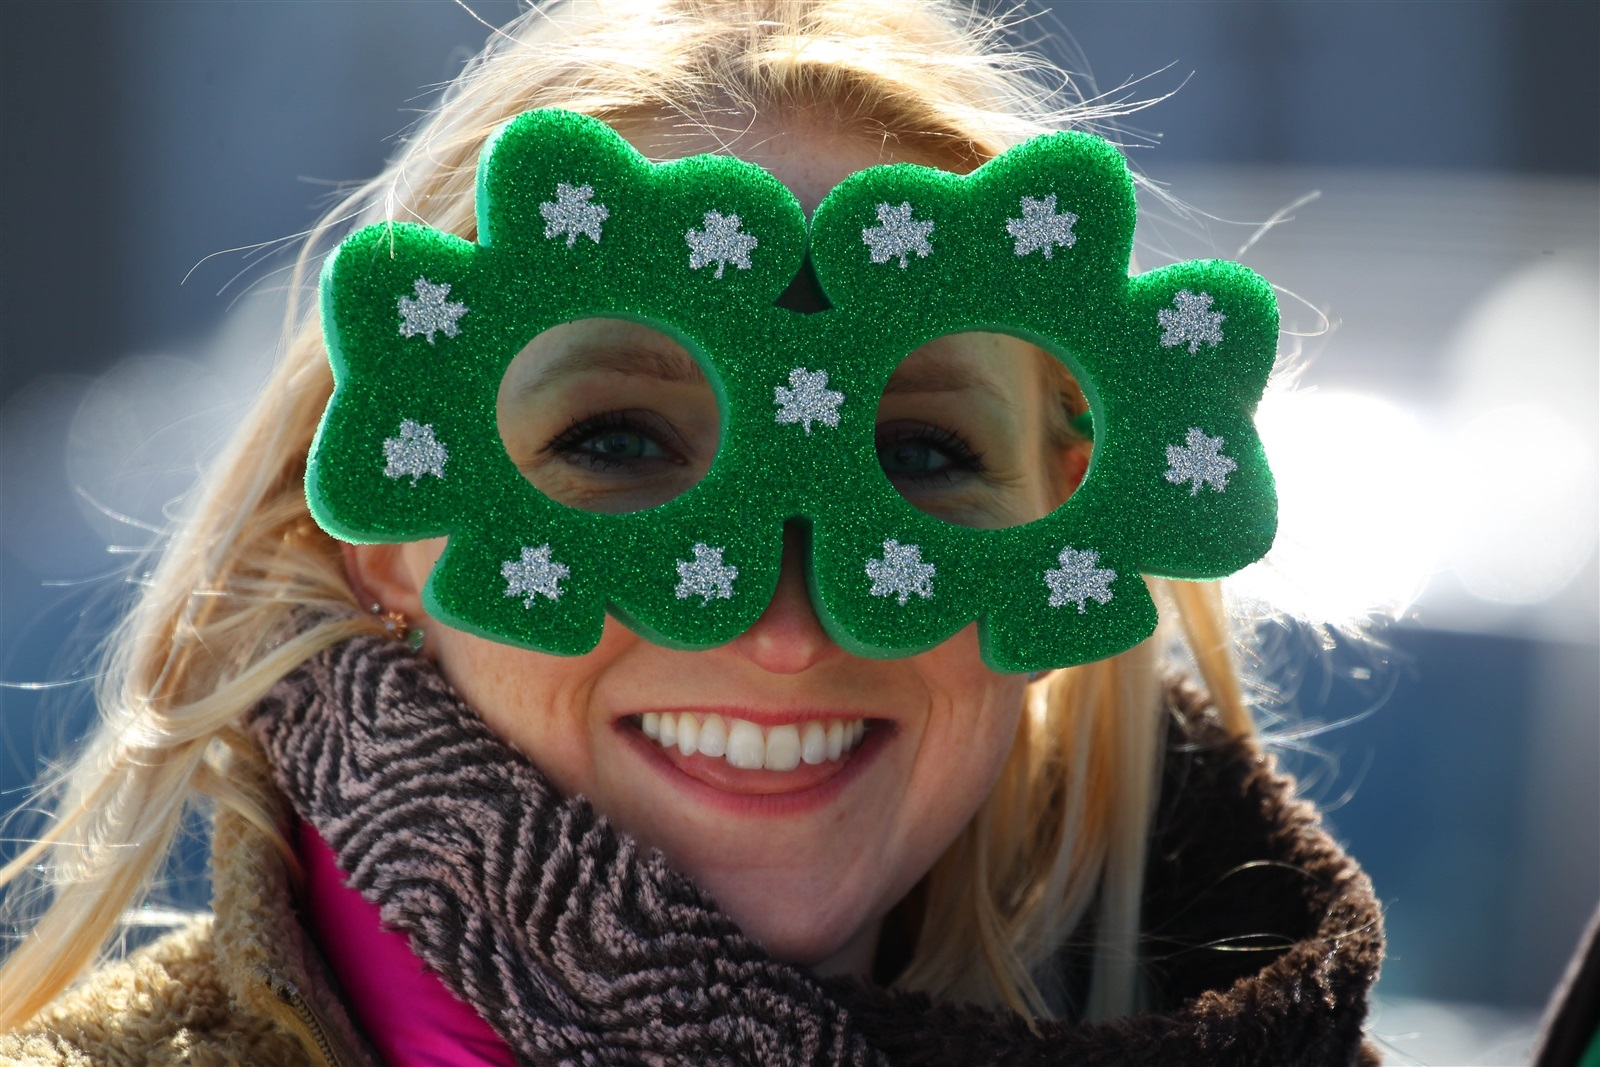 Lackawanna's St. Patrick's Day Parade is celebrating 72 years.